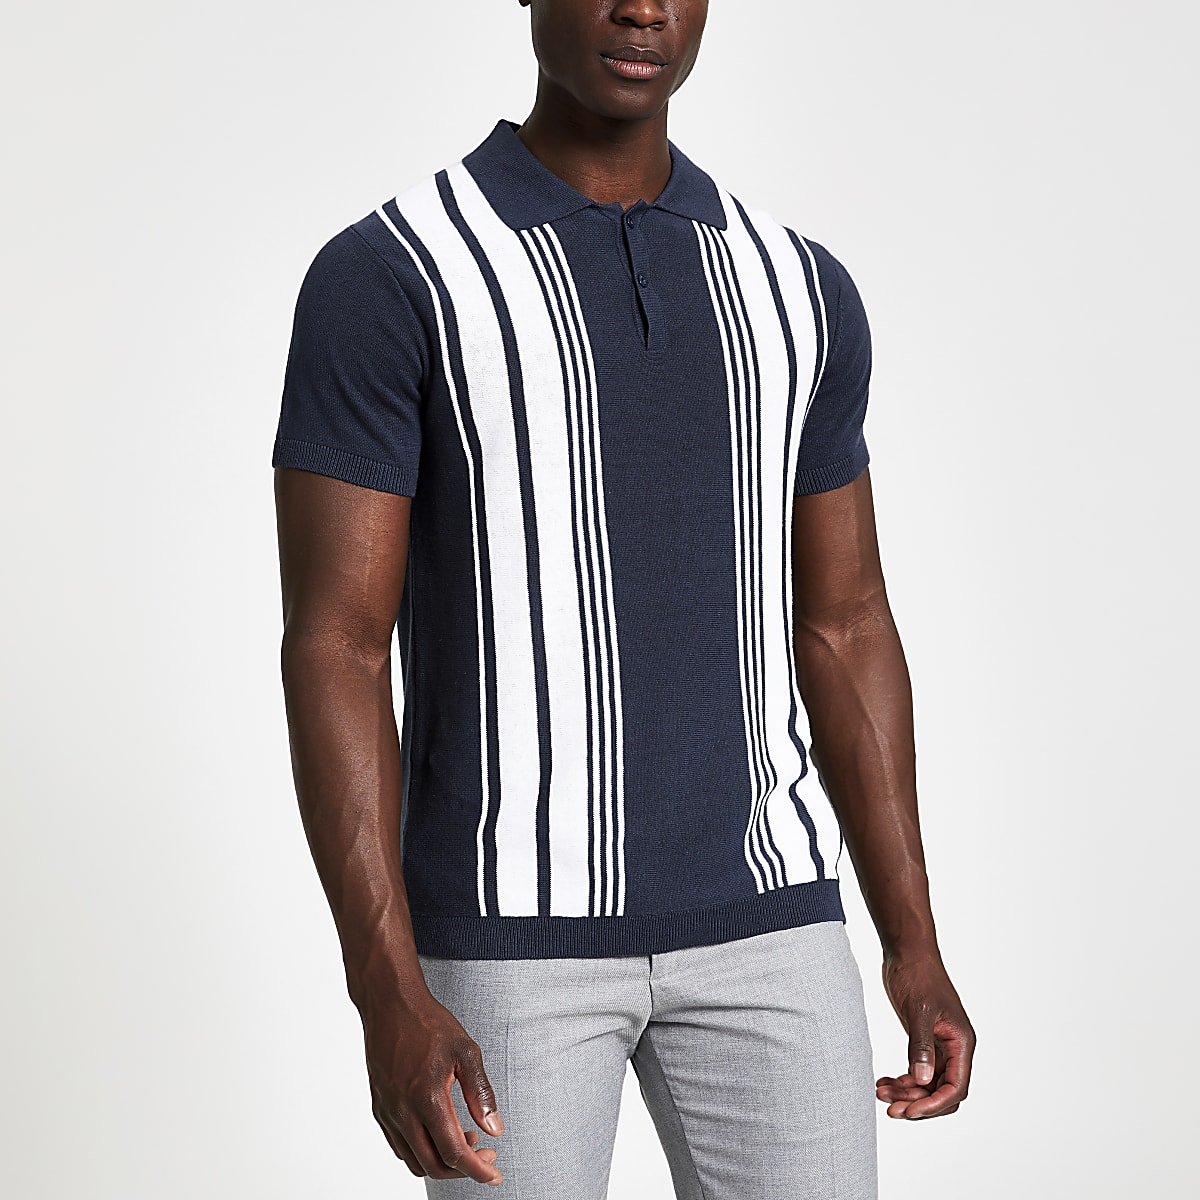 Jack and Jones blue knitted polo shirt